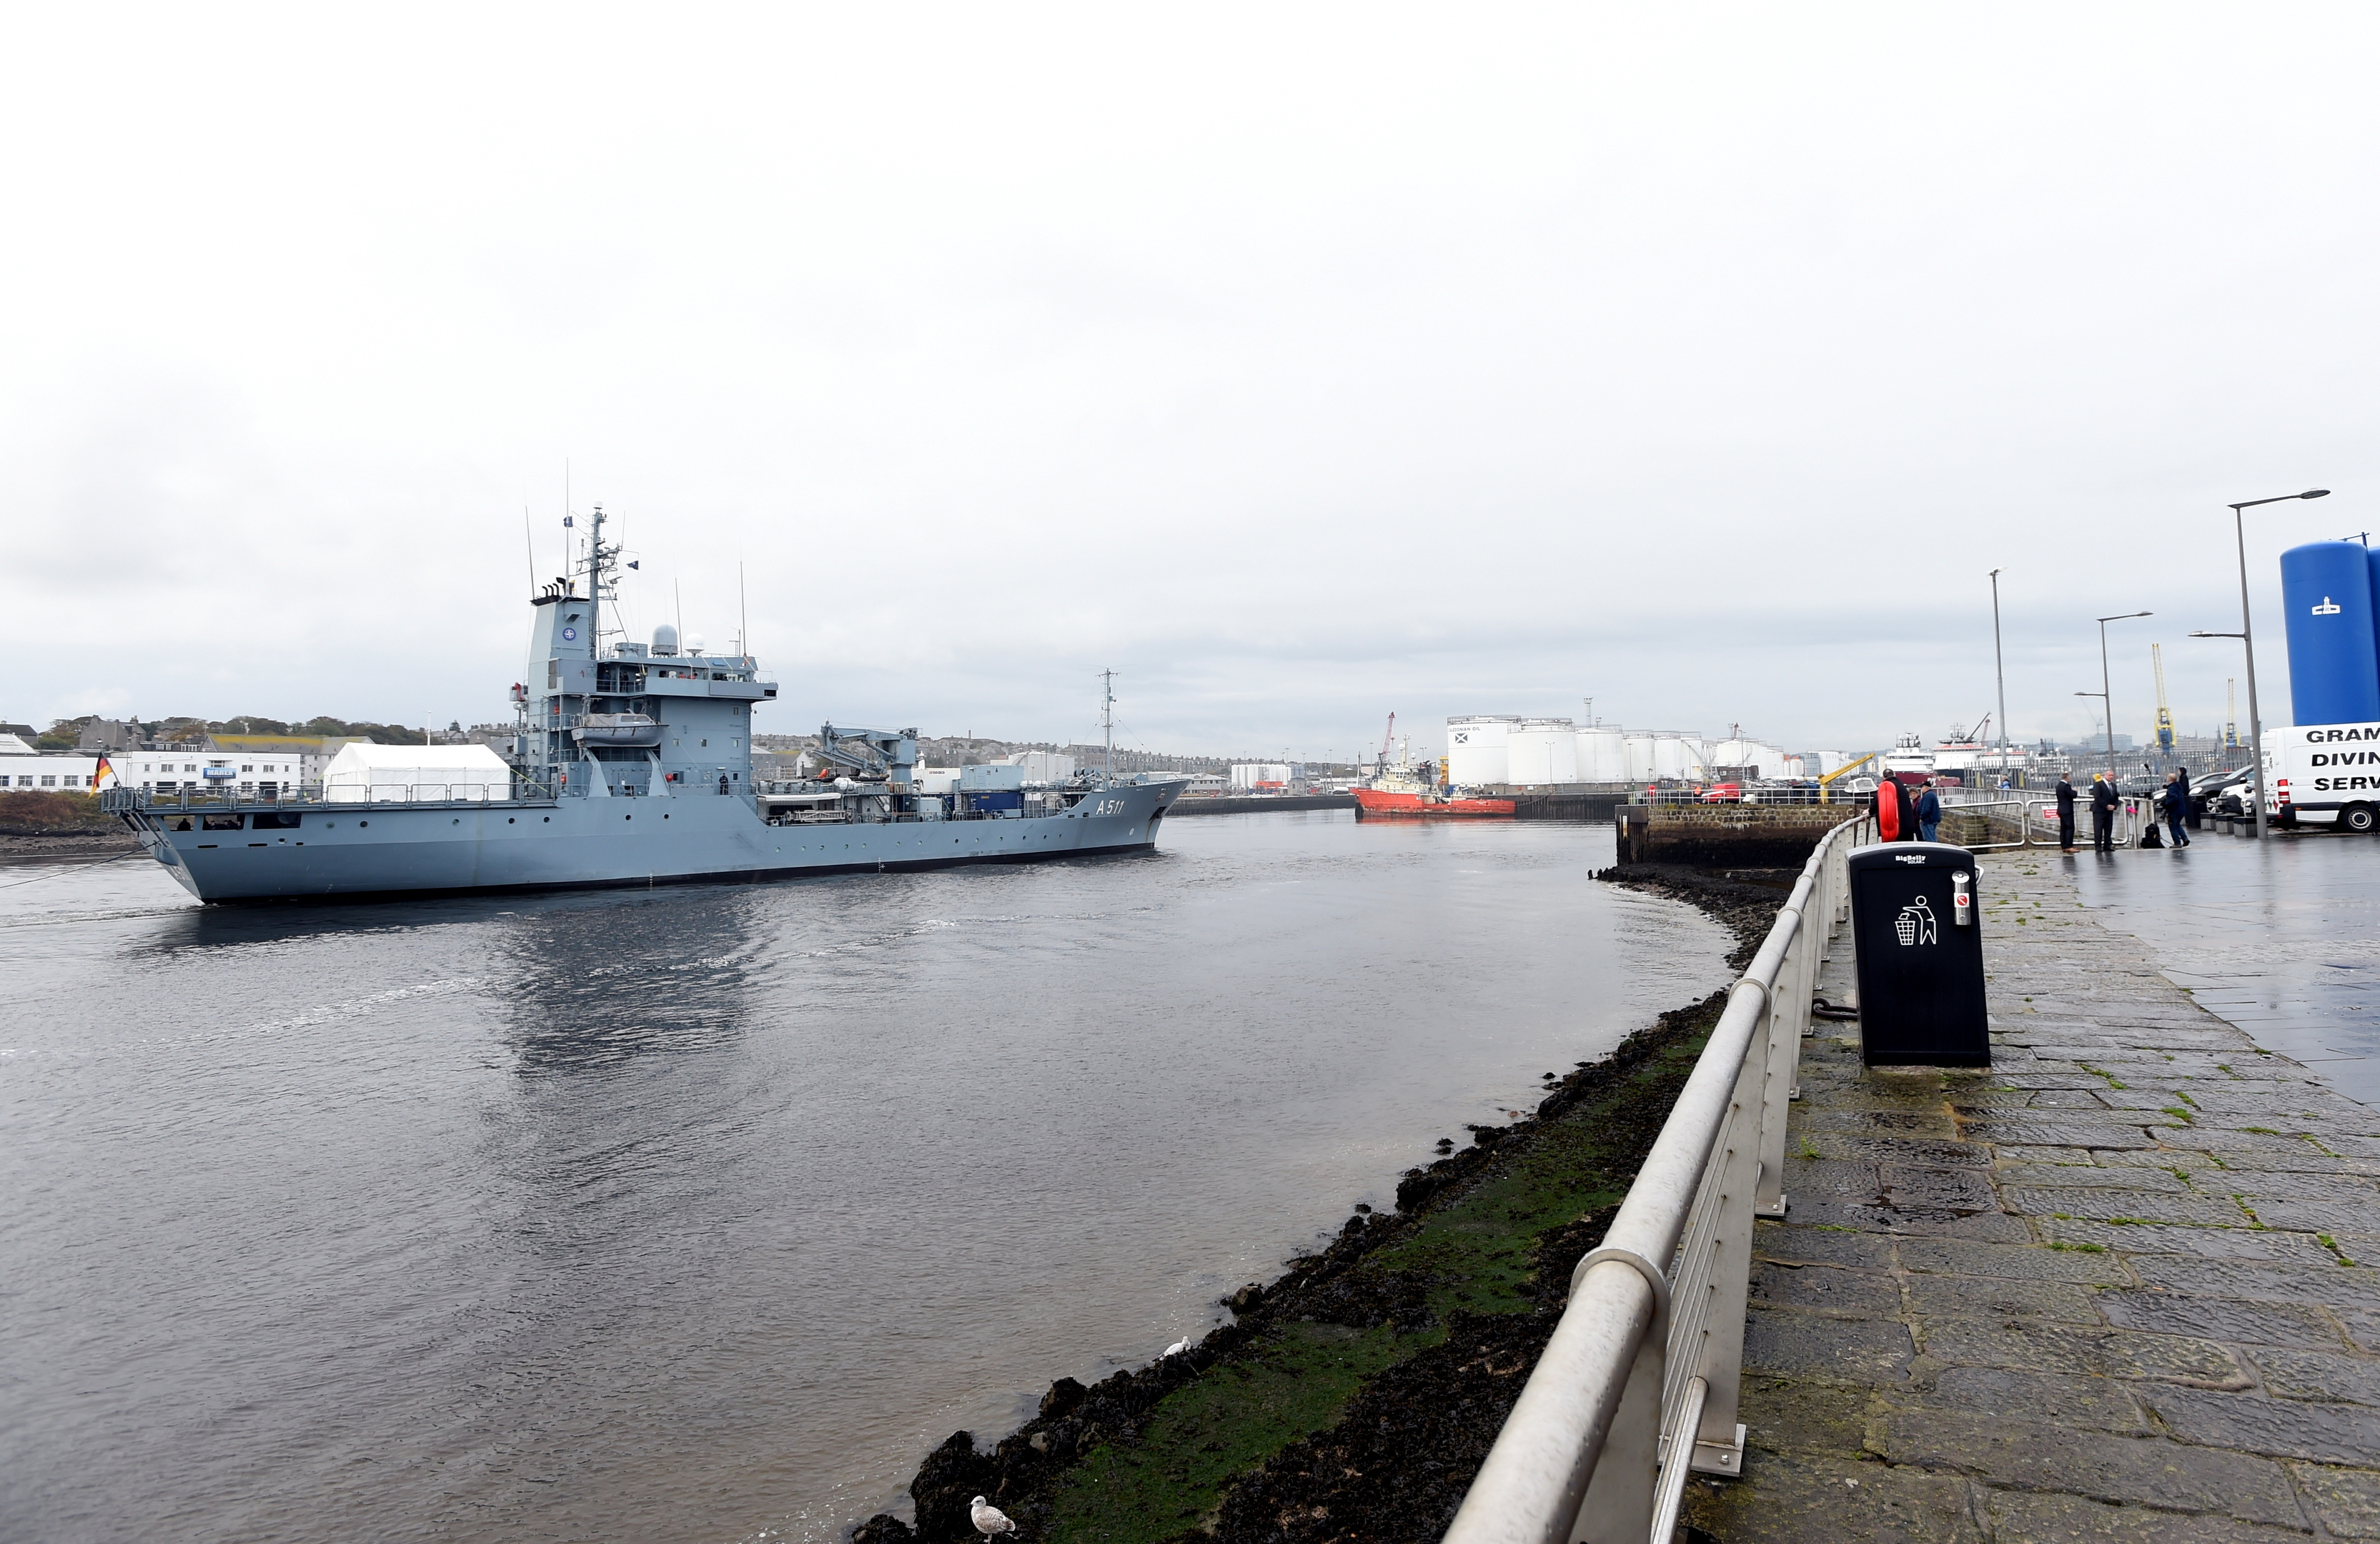 The FGS ELBE (replenishment ship)  in  Aberdeen Harbour. Inset, two of the other ships in the taskforce.